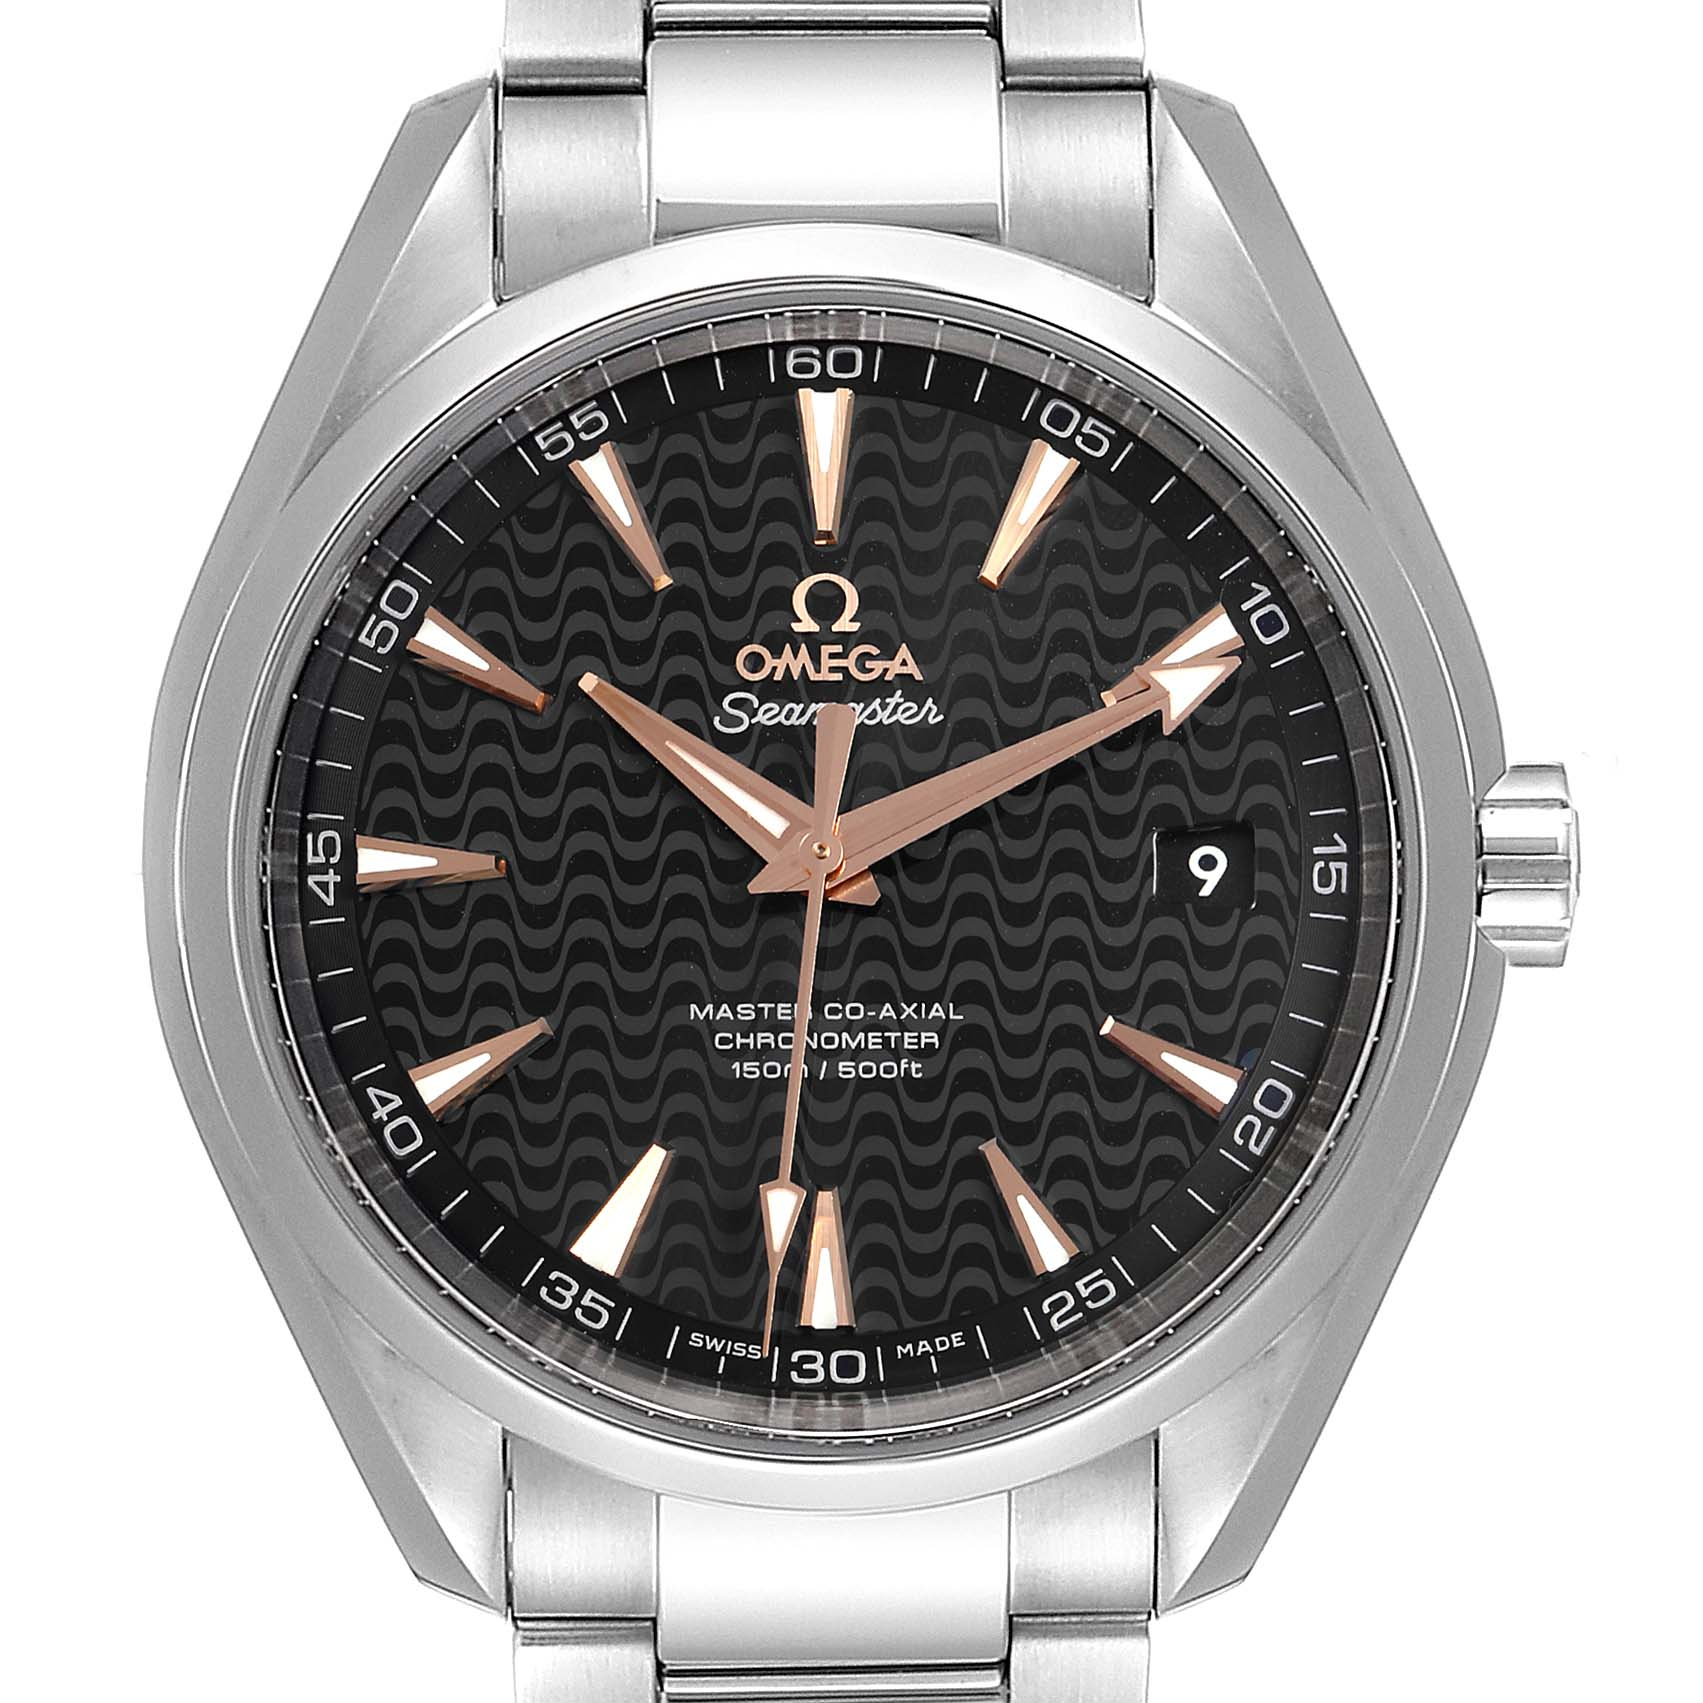 Omega Seamaster Aqua Terra Anti‑magnetic Watch 231.10.42.21.01.006 Unworn